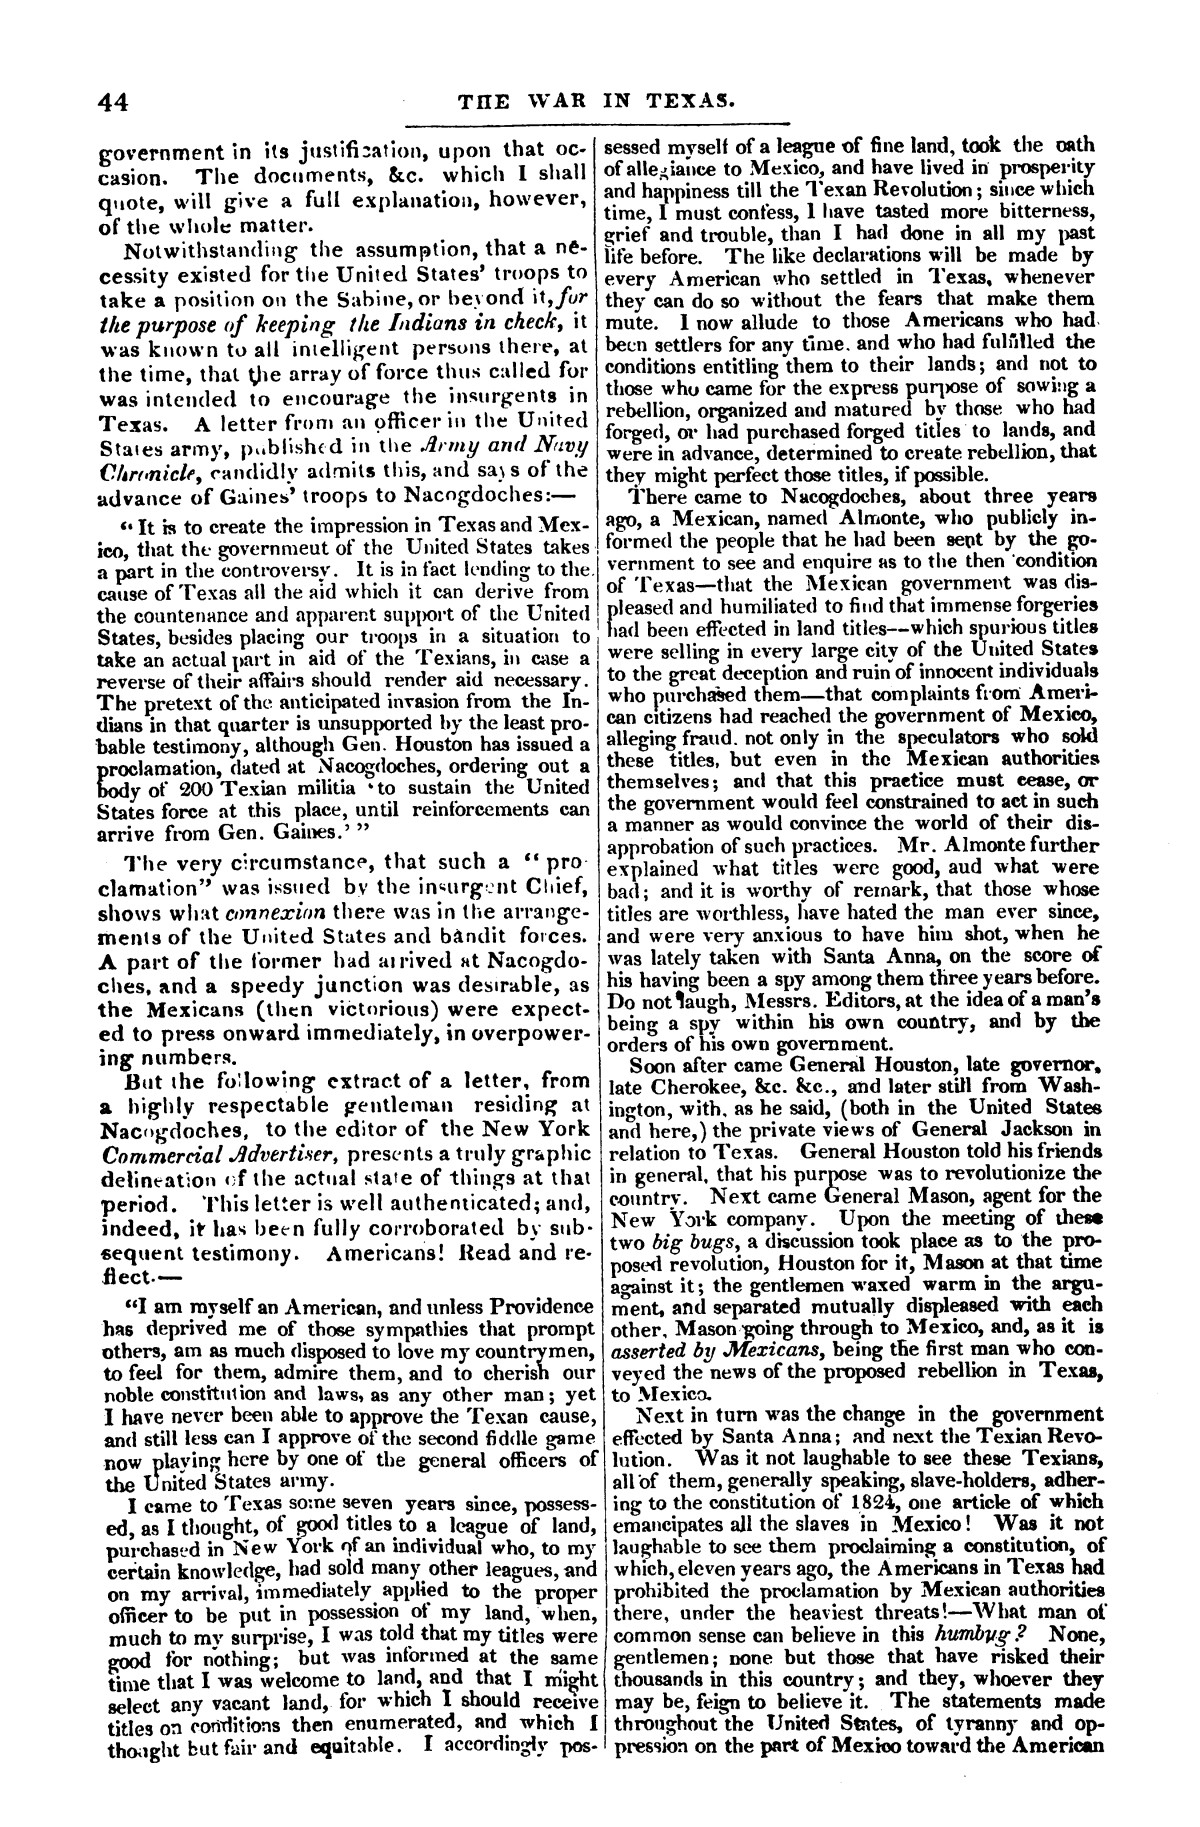 The war in Texas; a review of facts and circumstances, showing that this contest is a crusade against Mexico, set on foot by slaveholders, land speculators, & c. in order to re-establish, extend, and perpetuate the system of slavery and the slave trade.                                                                                                      [Sequence #]: 44 of 64